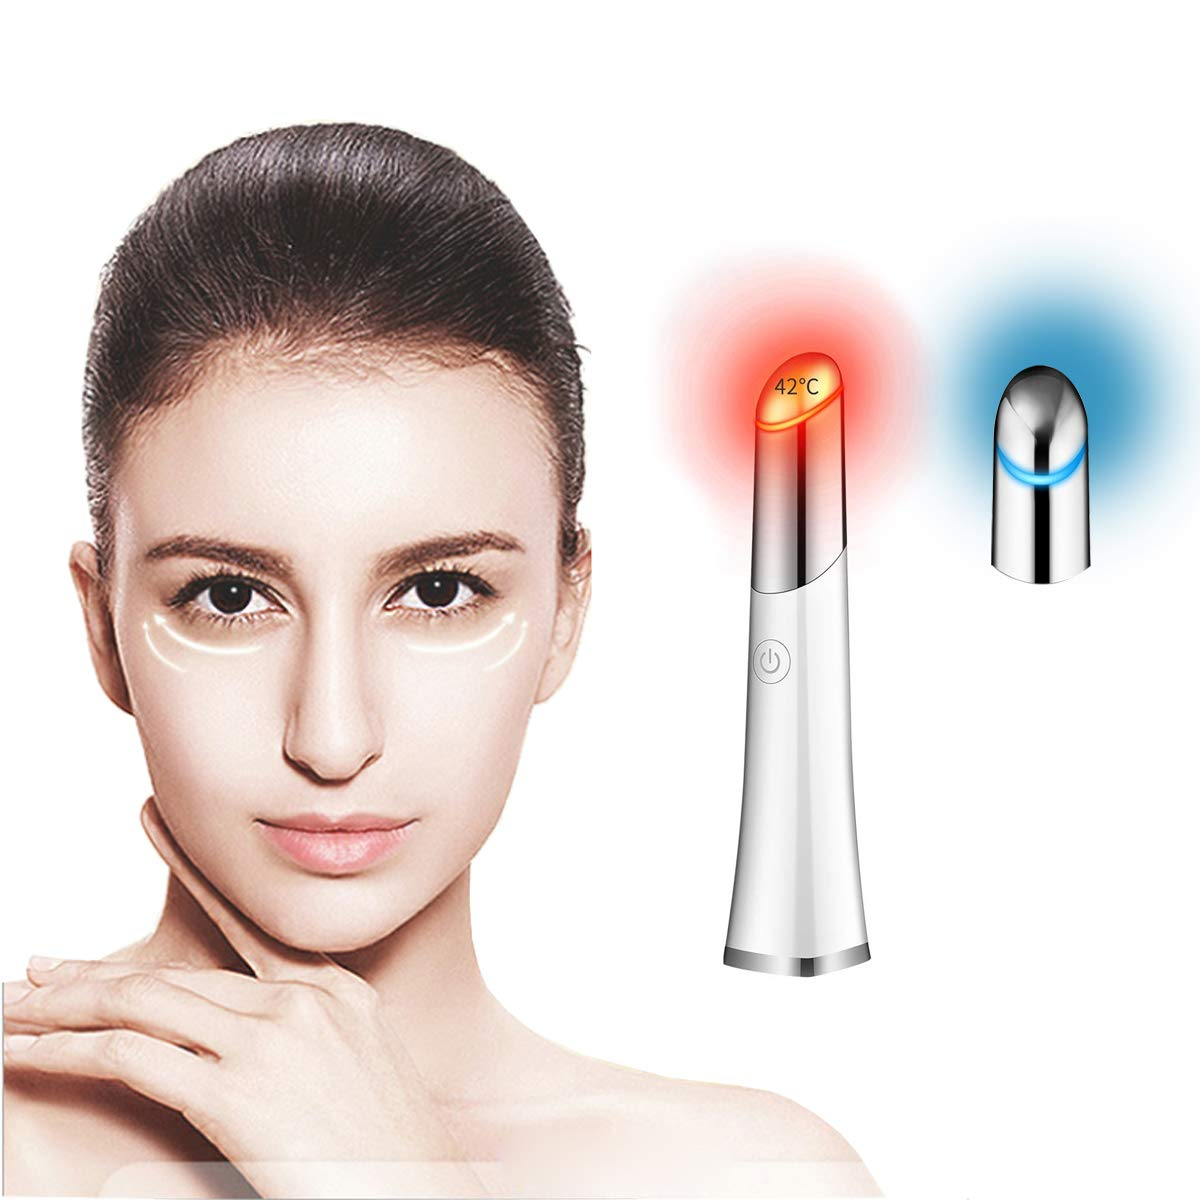 Eye Massager,42℃ Ionic Eyes Facial Massager Roller with Heated Sonic Vibration Relieving Dark Circles Fatigue, Puffiness Anti-Aging, Anti-Wrinkle, Two Modes USB Rechargeable (Rose Gold) by Zuoli